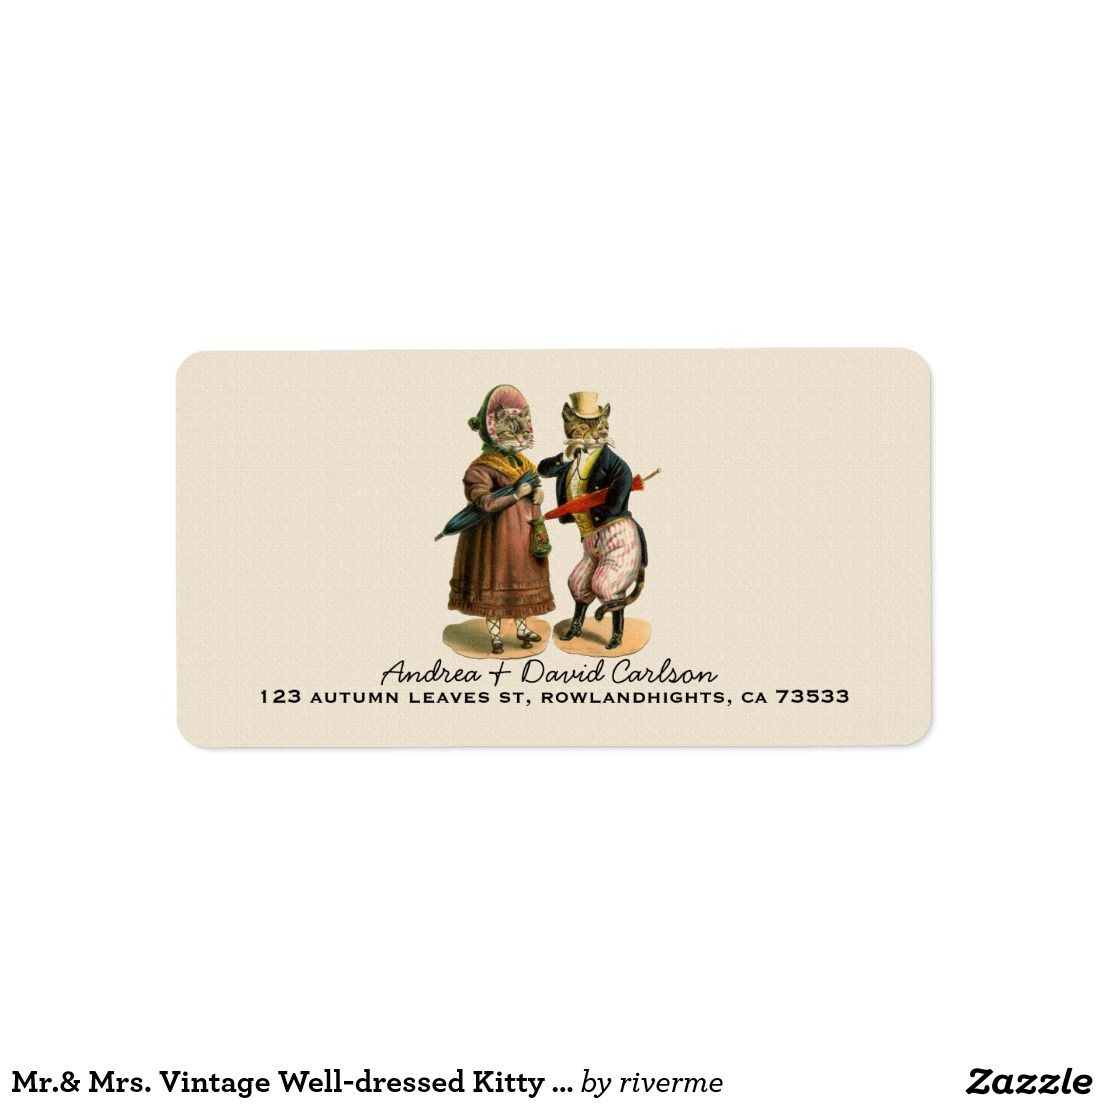 Mr.& Mrs. Vintage Well-dressed Kitty Cat Label